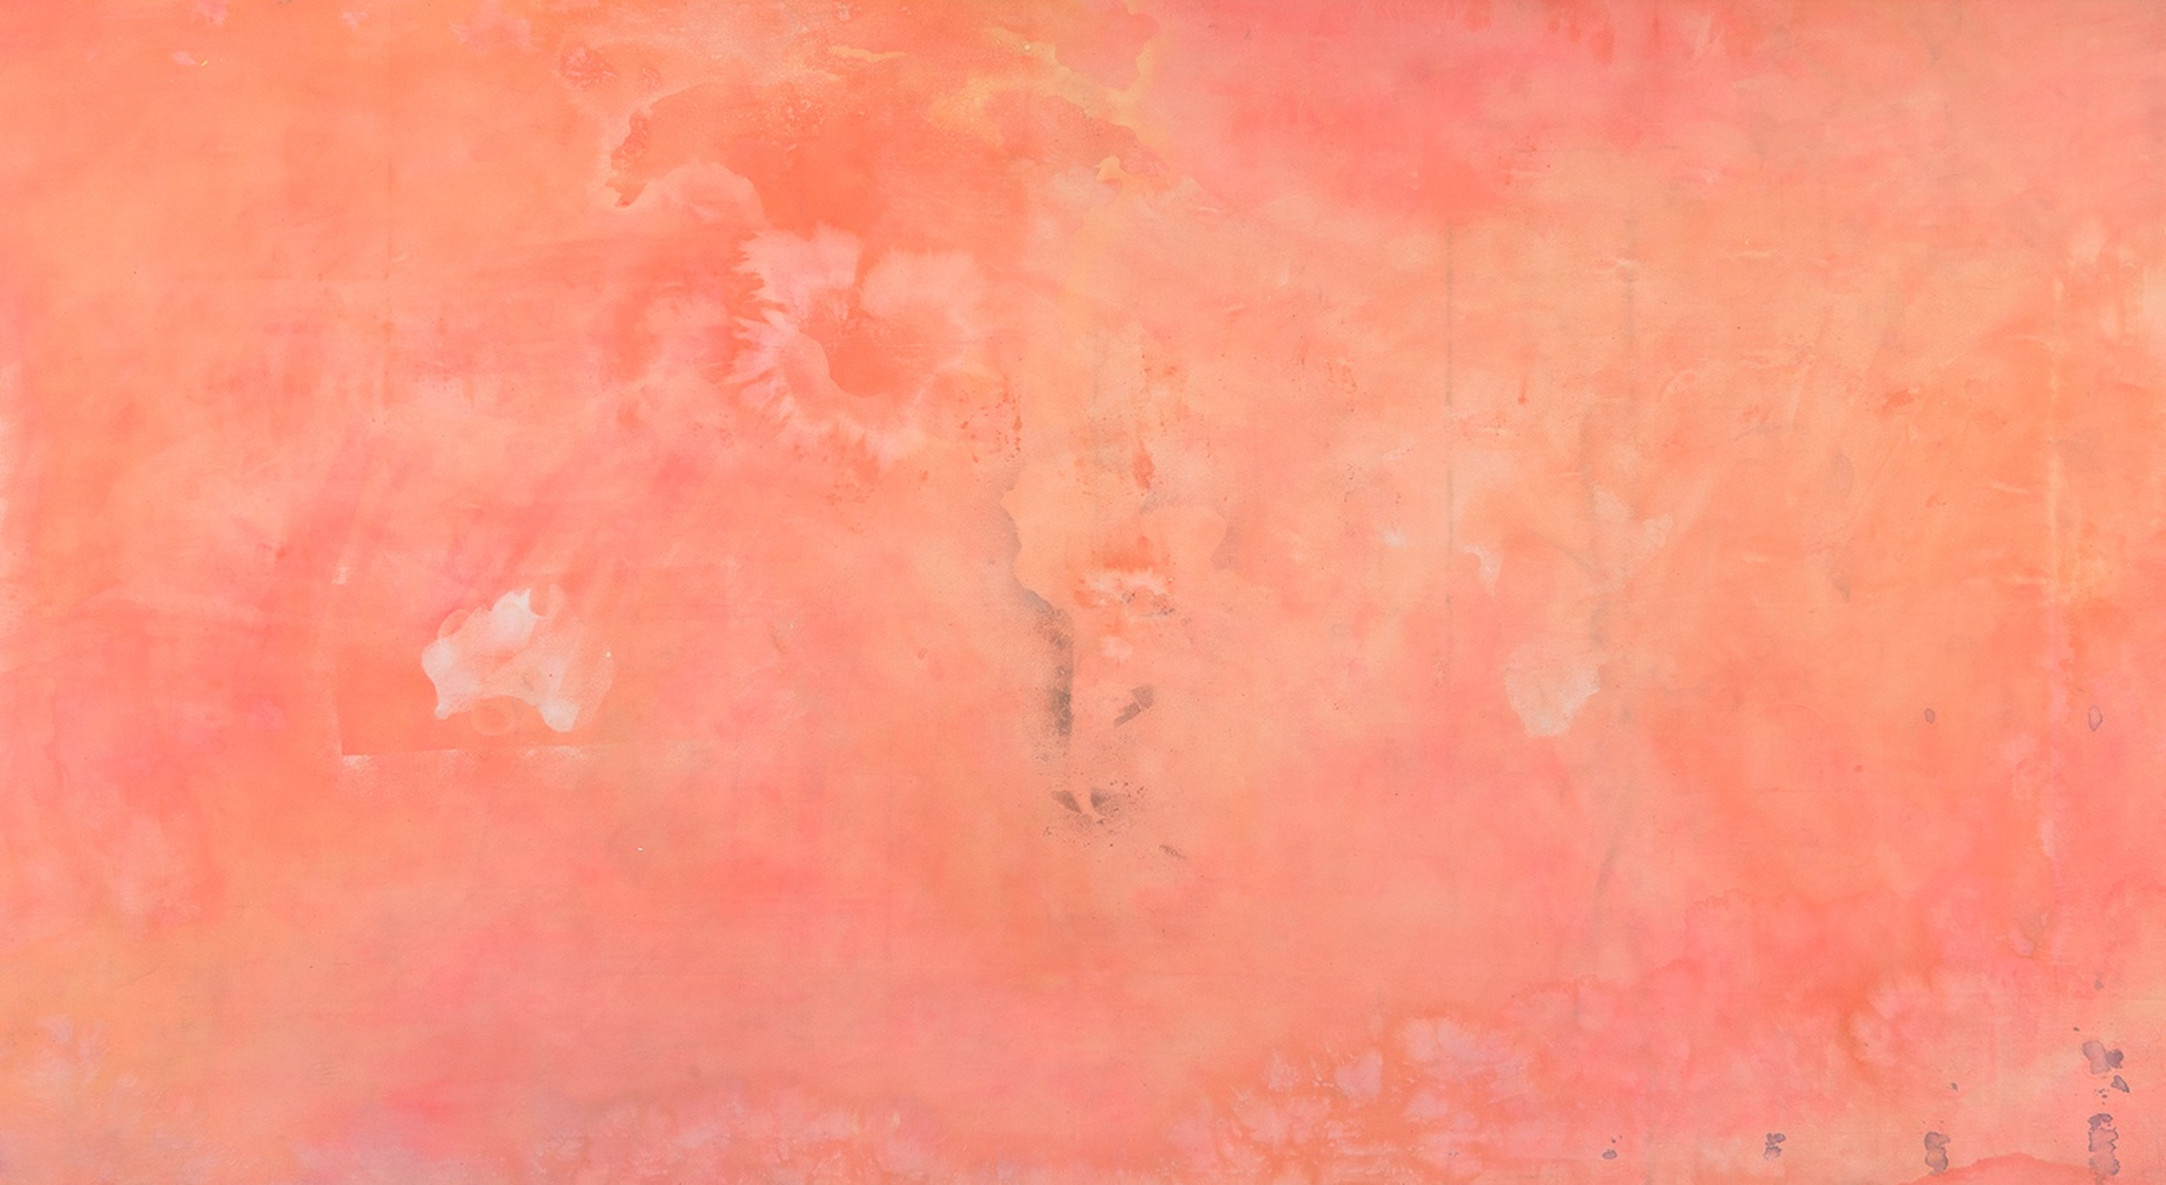 Frank Bowling, False Start, 1970, Acrylic and spray paint on canvas, 232.5 x 548 cm, 91 1/2 x 215 3/4 in